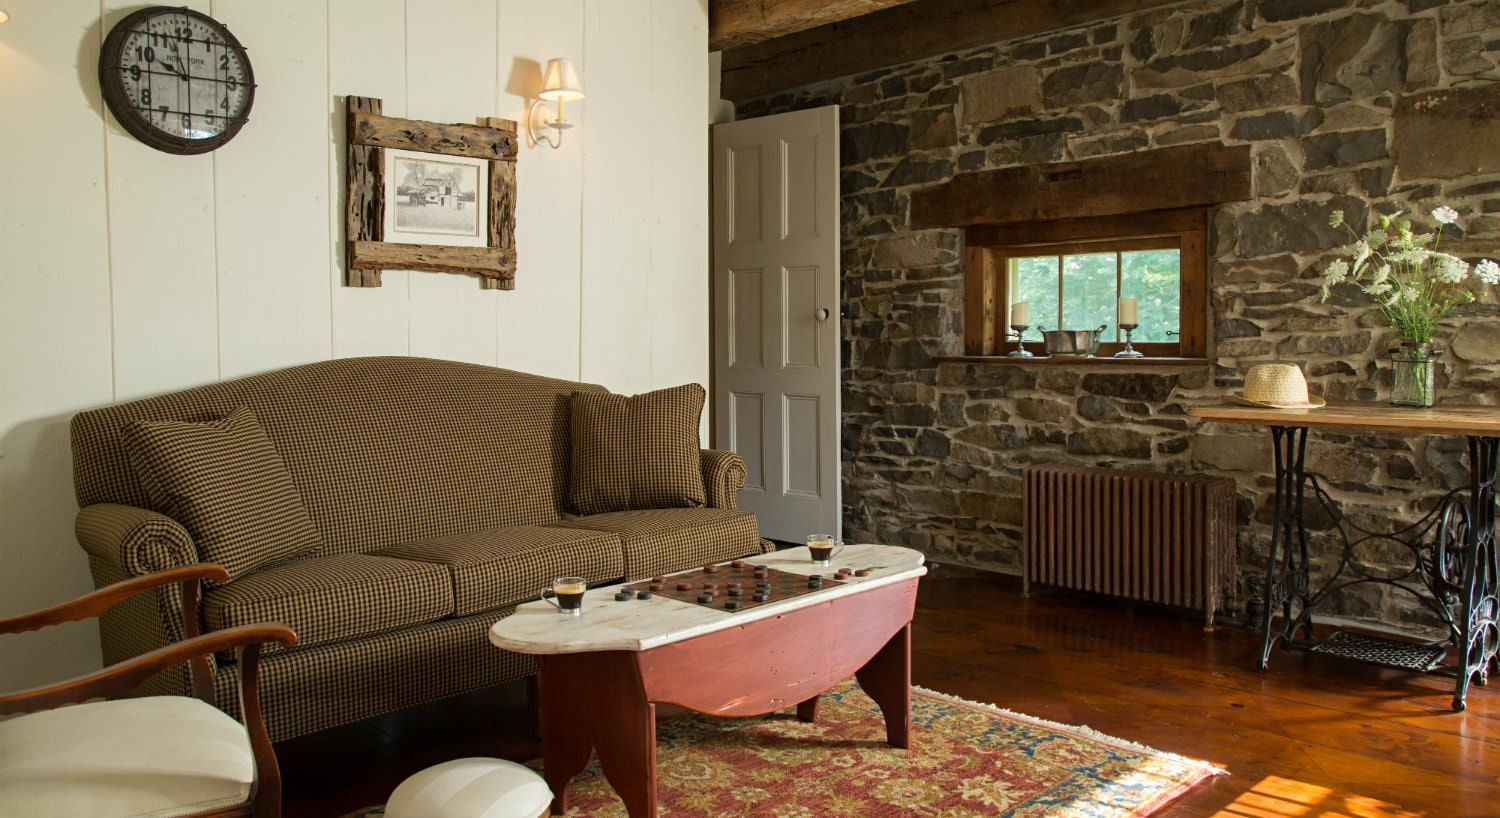 Rustic sitting room with white painted wood walls, stone wall with small window, sofa and chair around painted coffee table